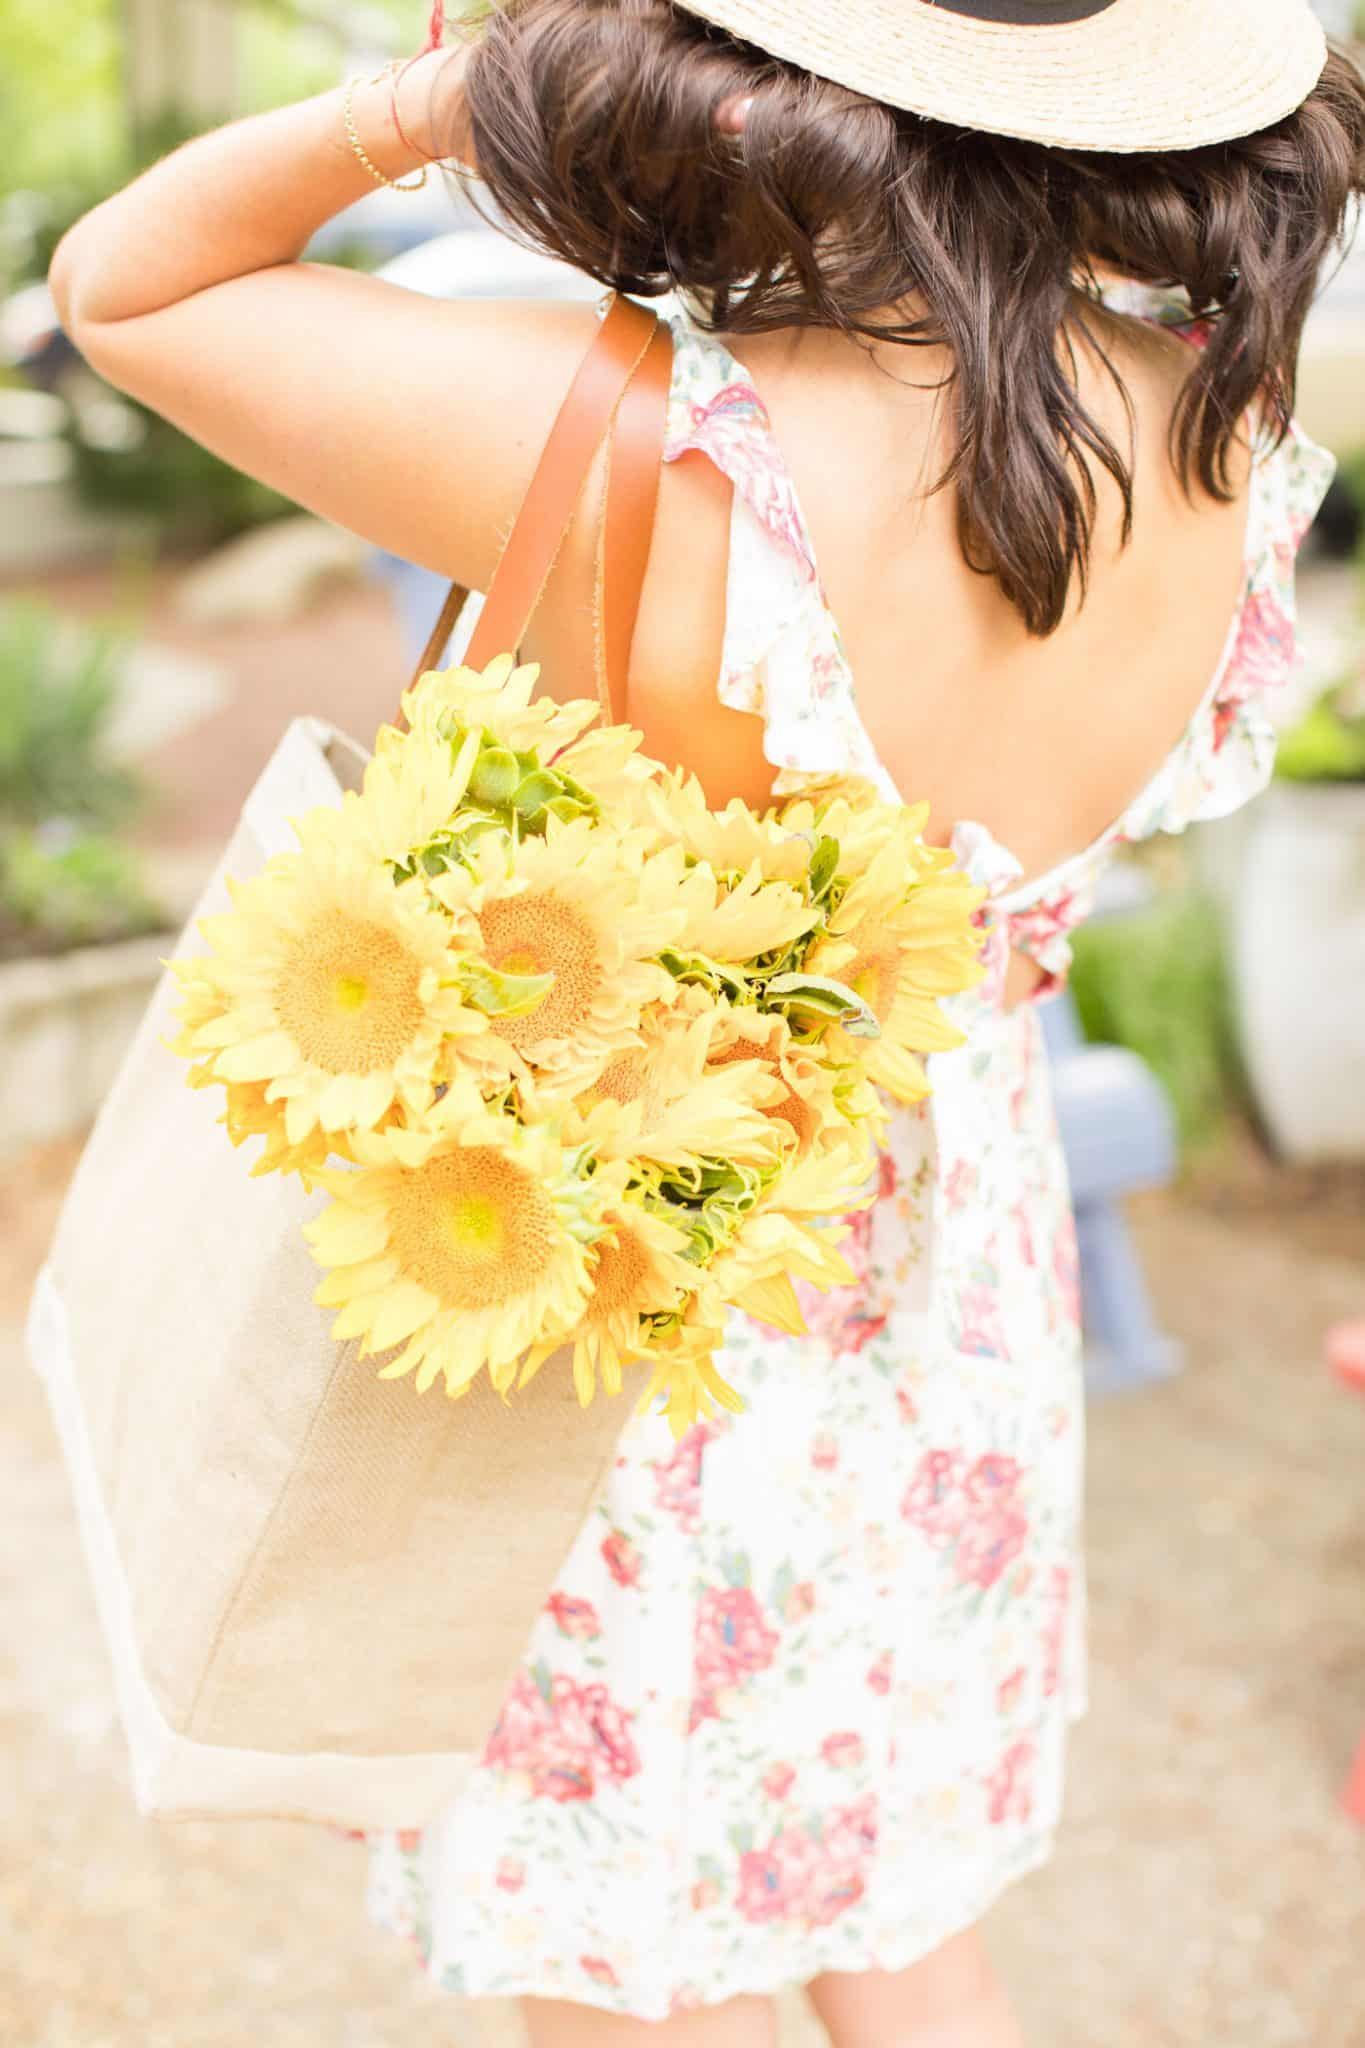 floral dress, summer outfits, sunflowers - My Style Vita @mystylevita